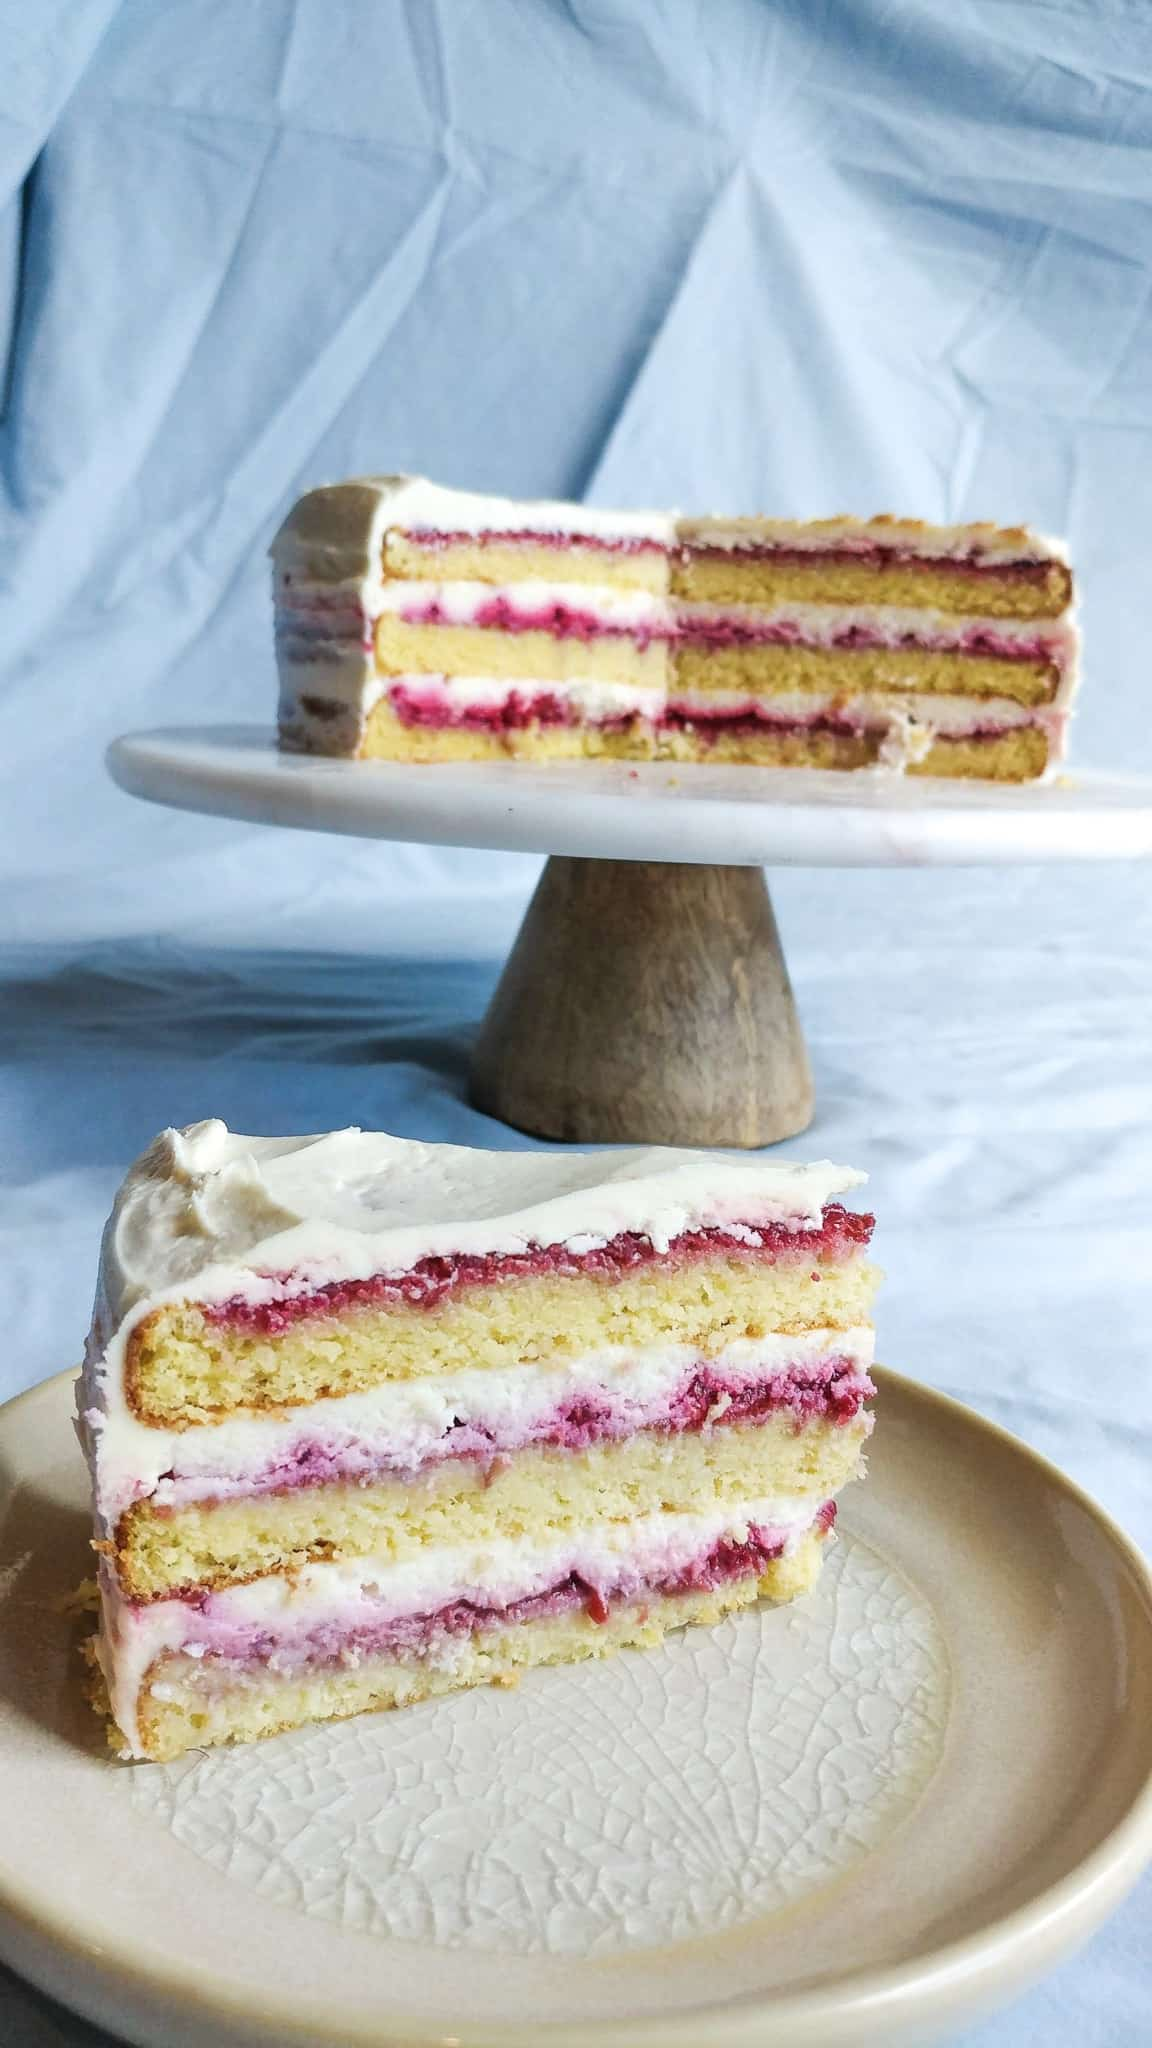 Layered Raspberry Cake on a plate